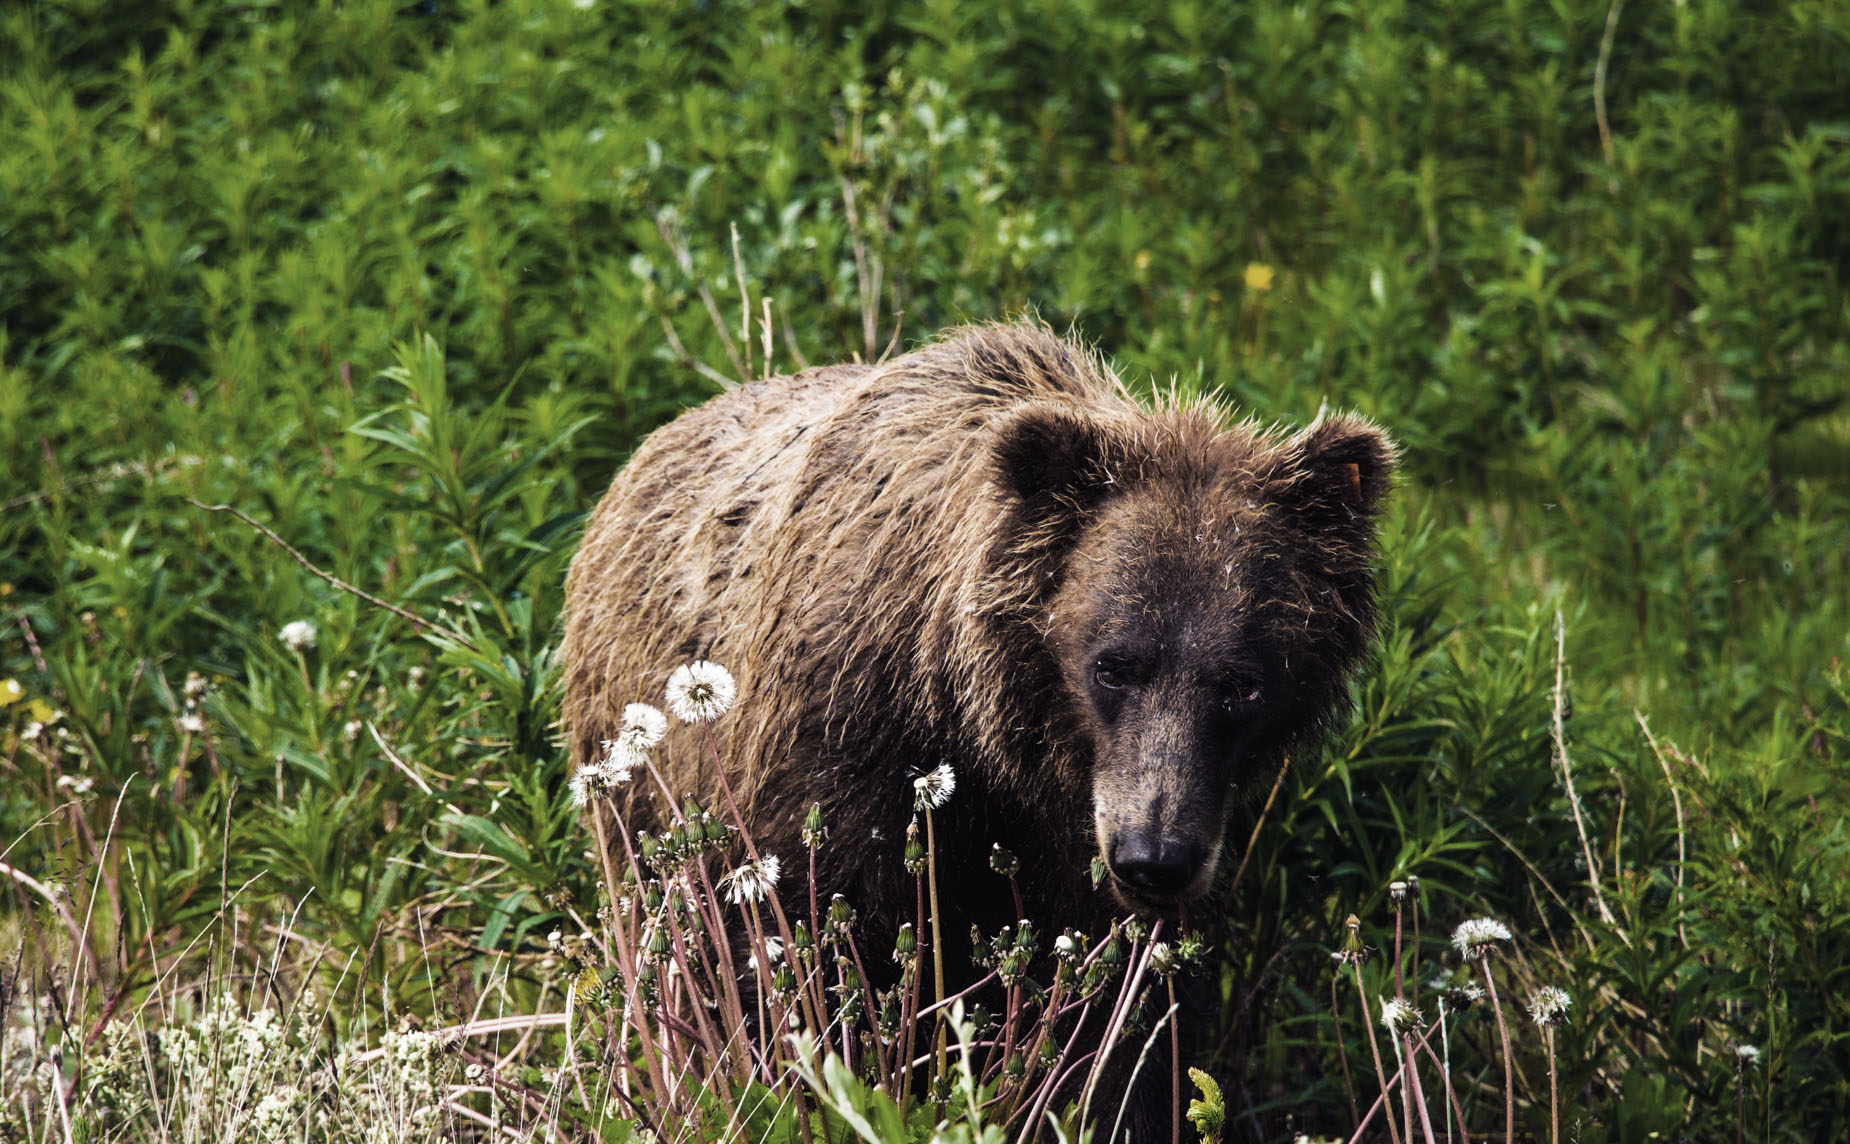 FISH AND WILDLIFE MANAGEMENT - By Rachel Levy-McLaughlin